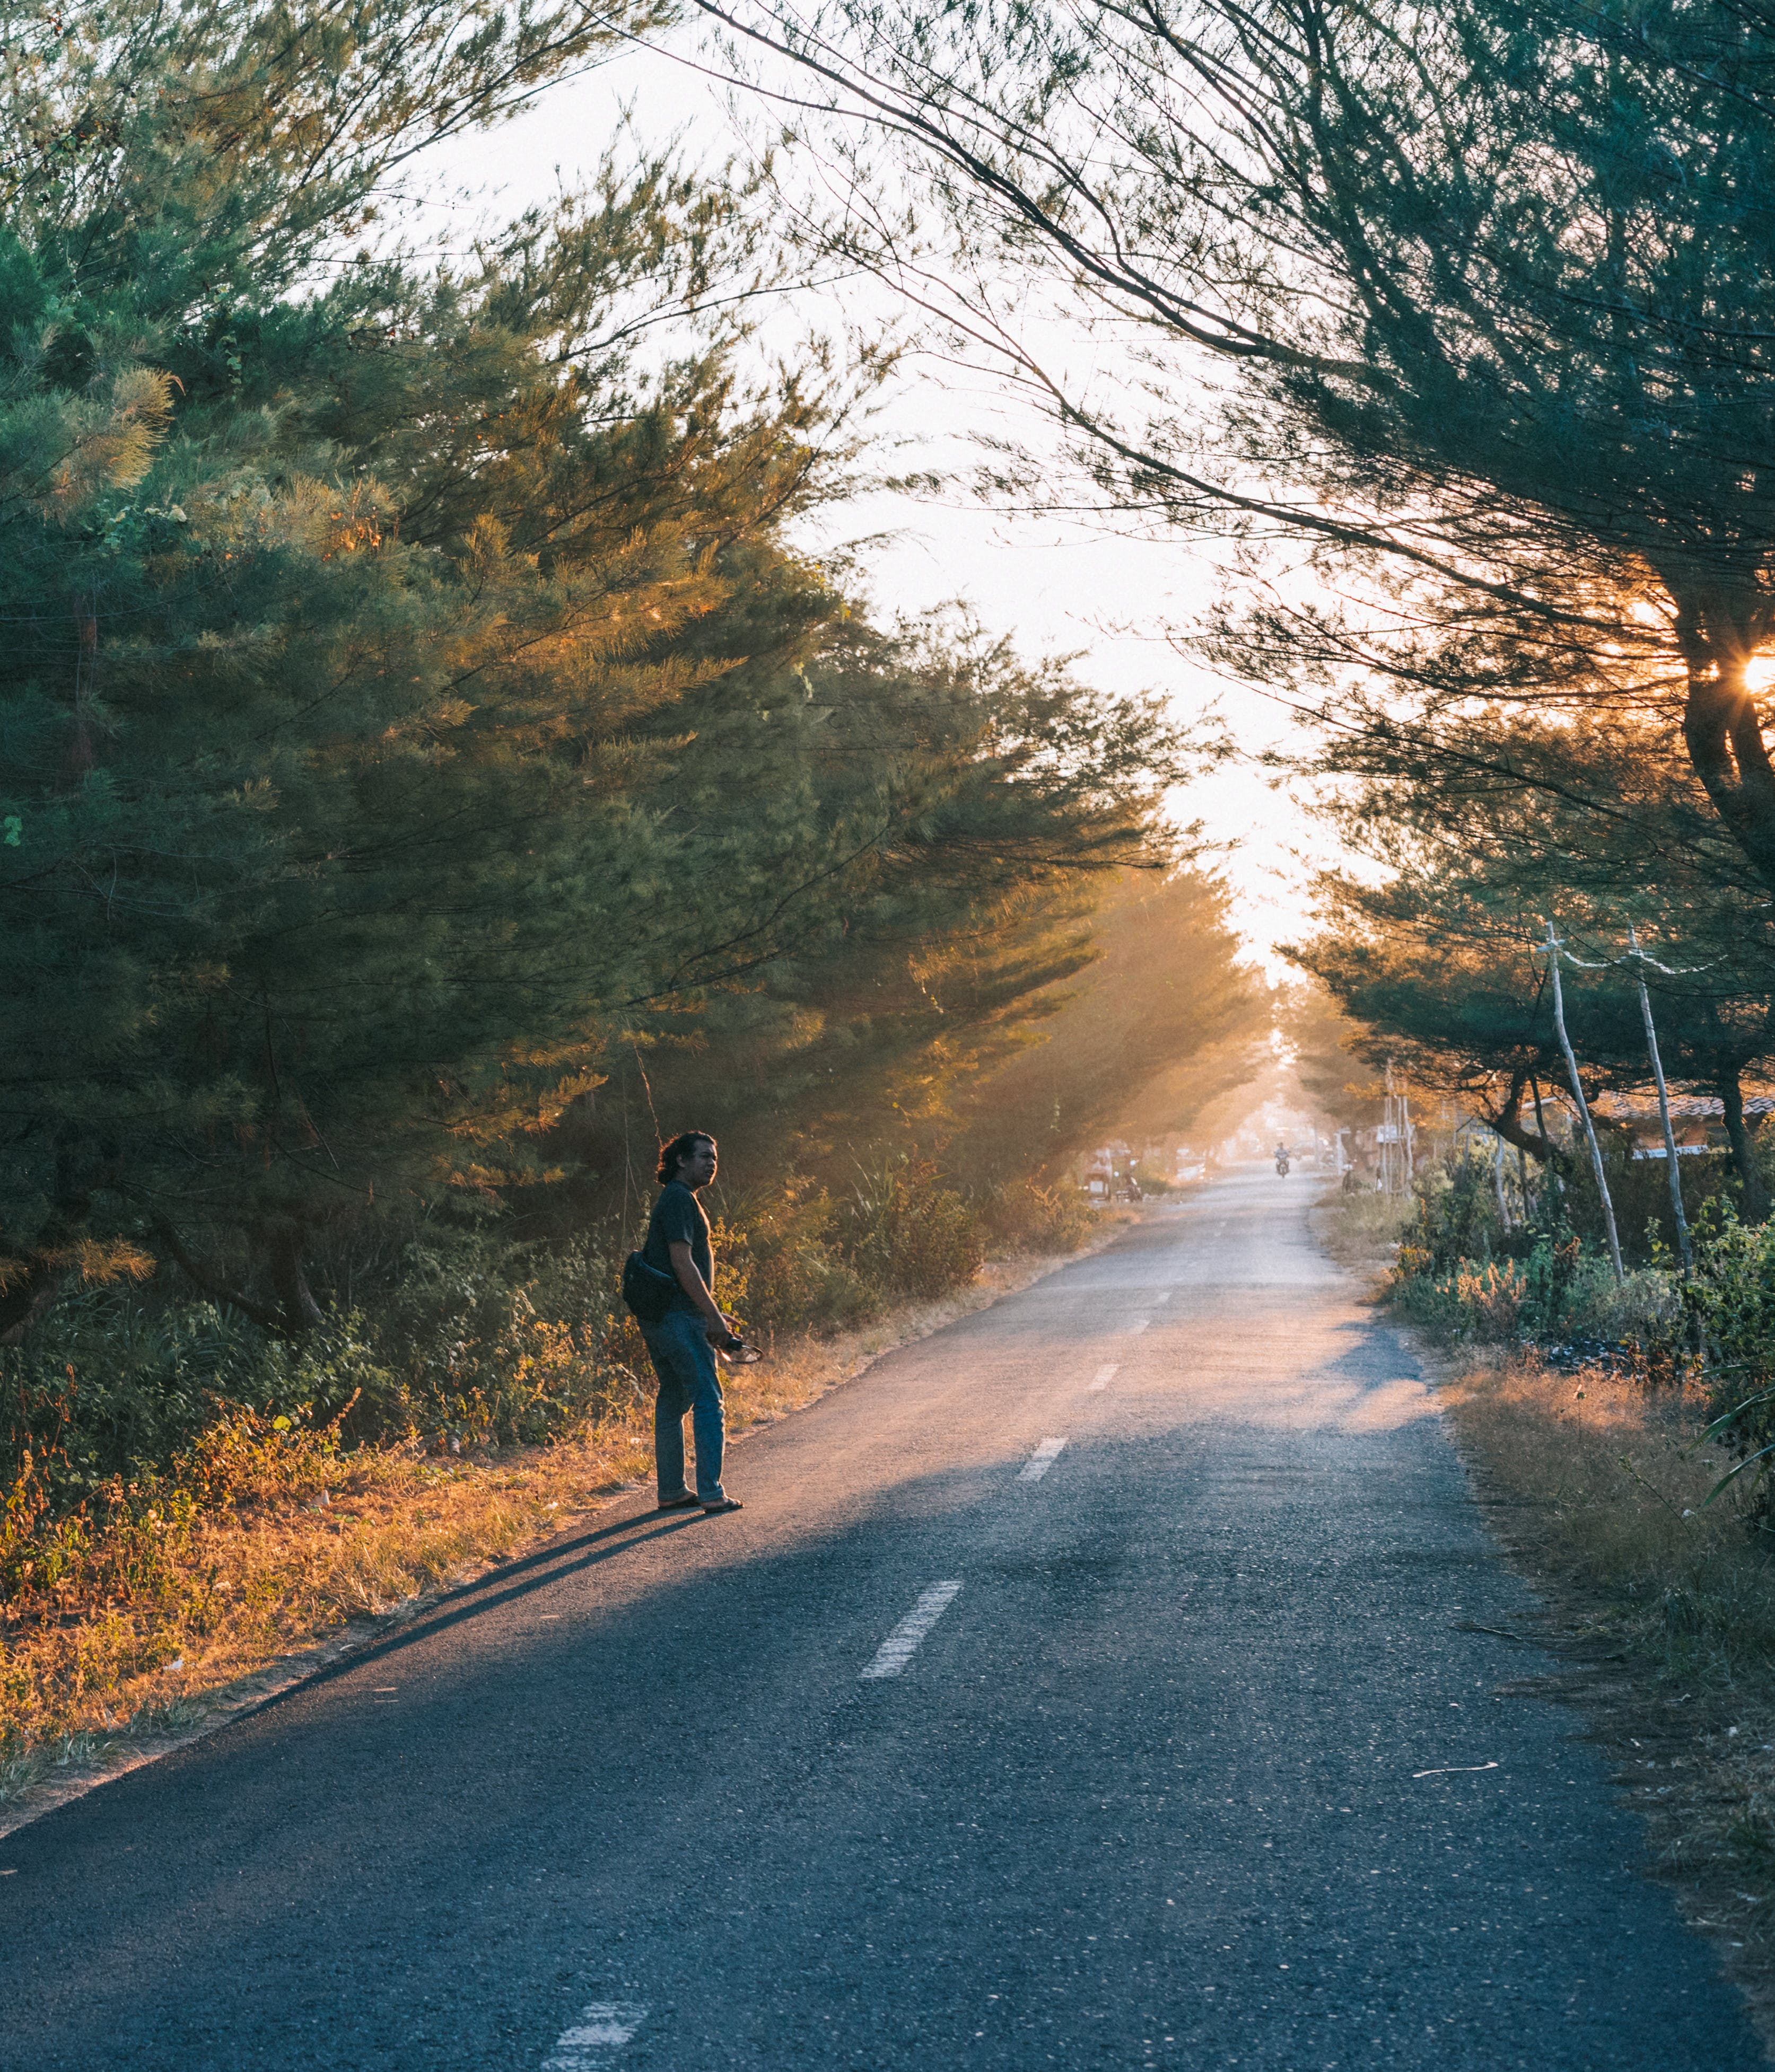 Free stock photo of road, dawn, landscape, nature